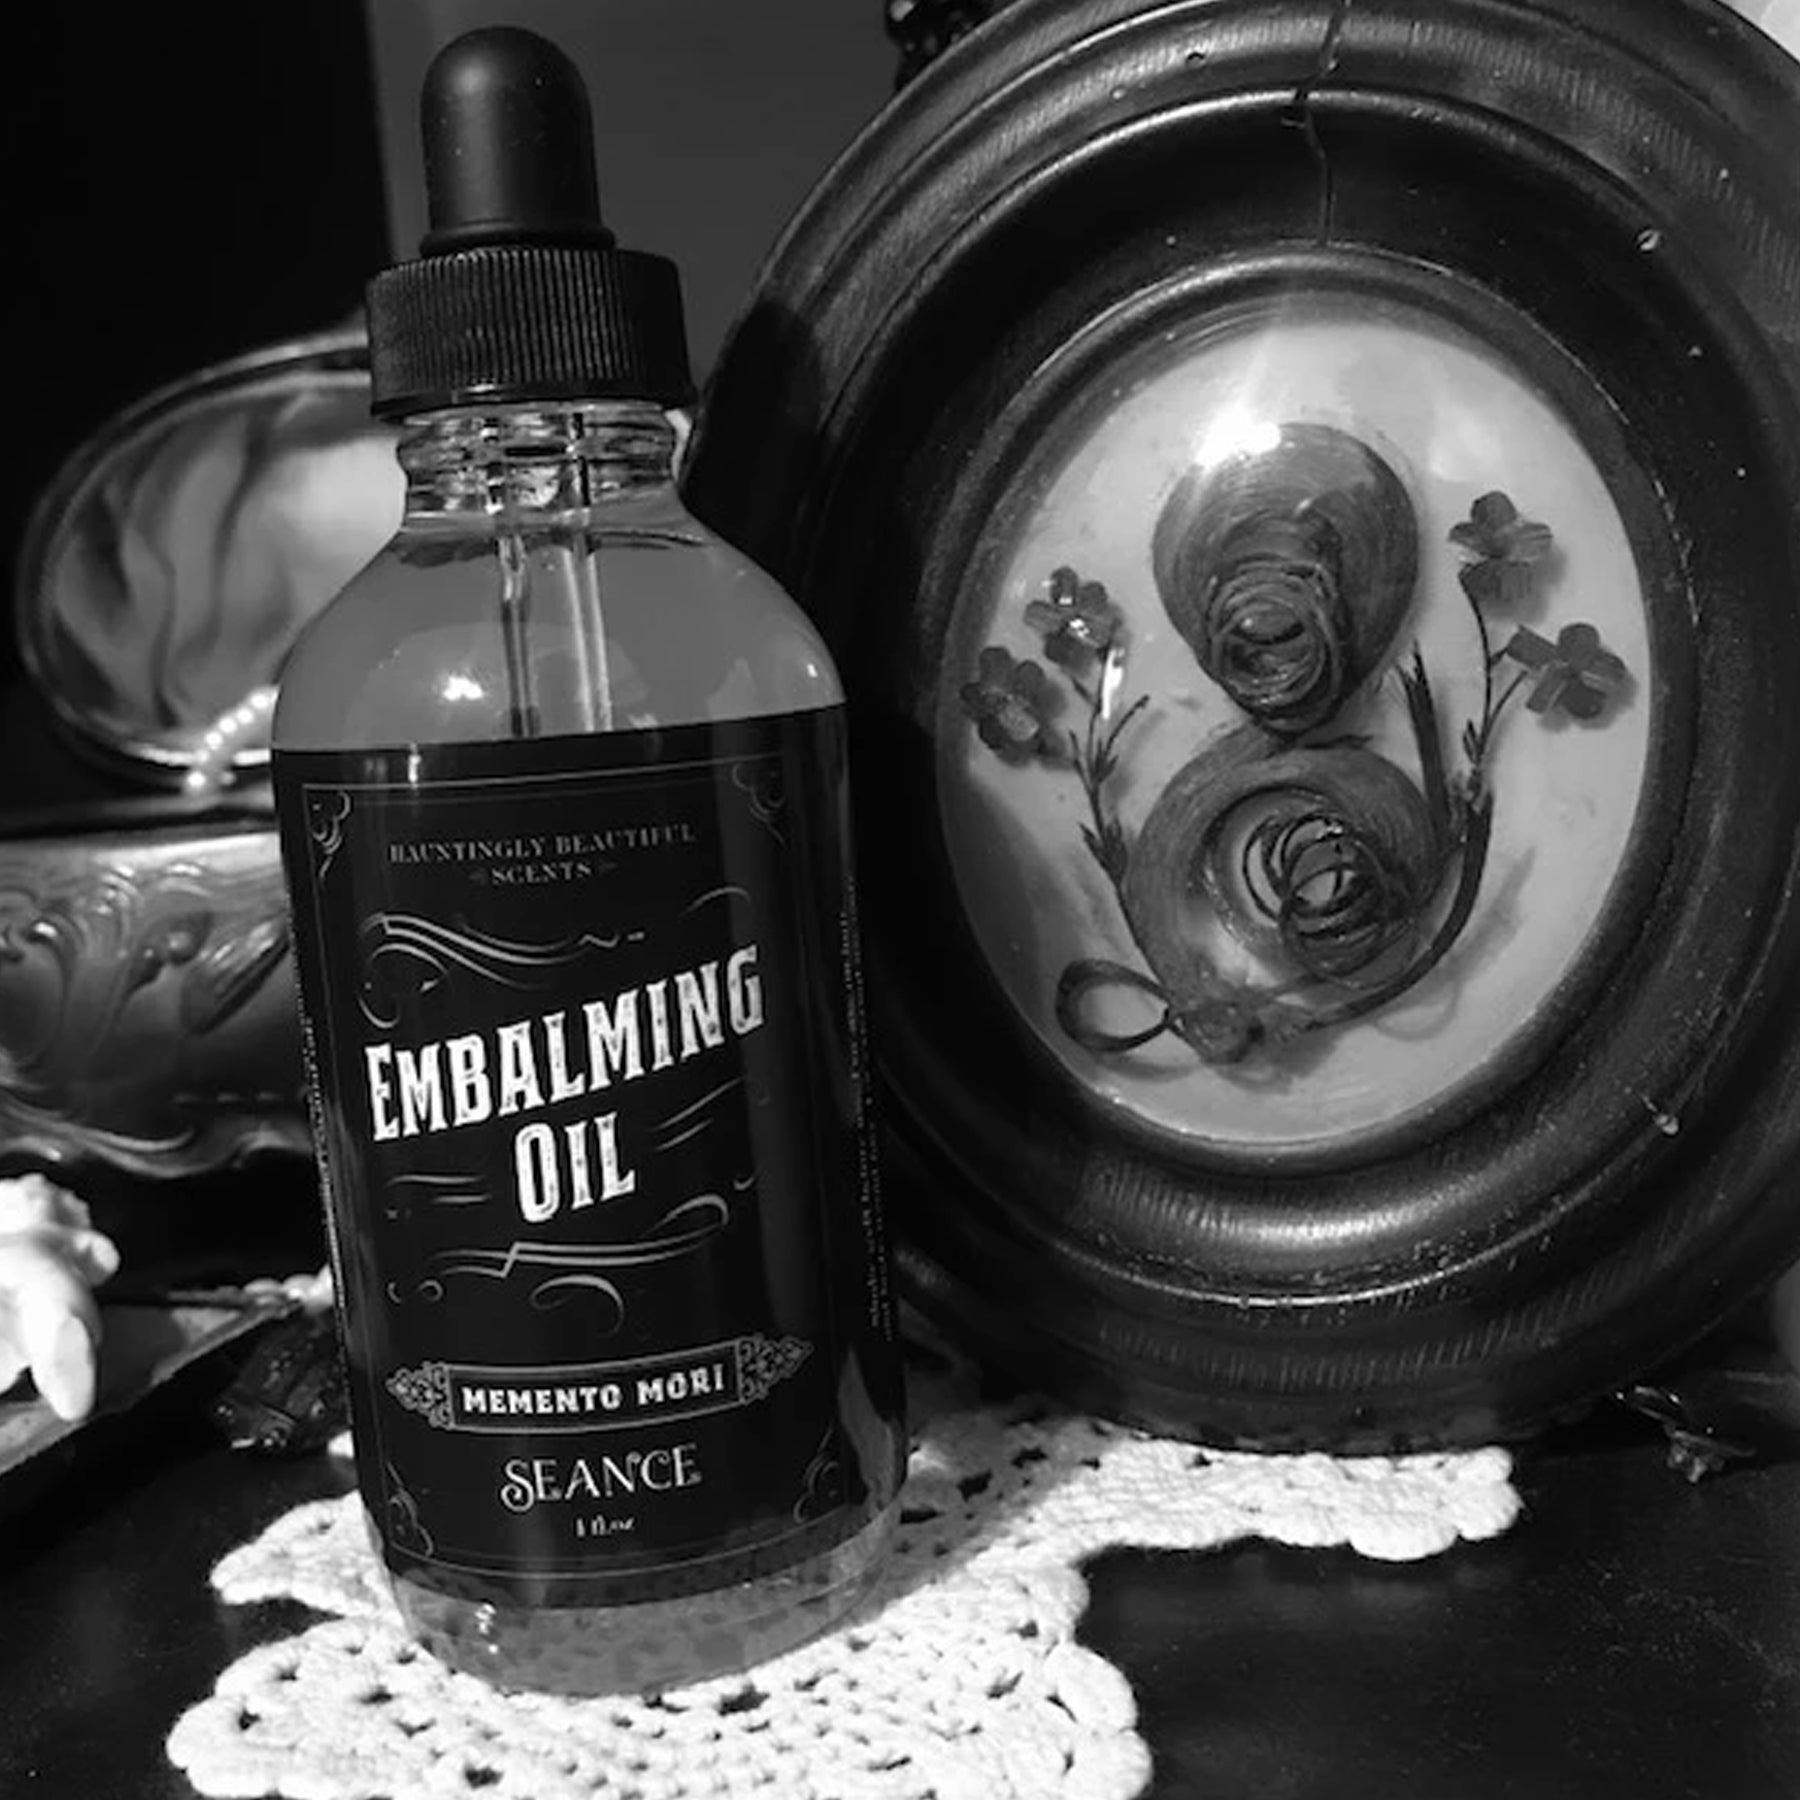 Seance Embalming Oil- (lotion oil)- Memento Mori